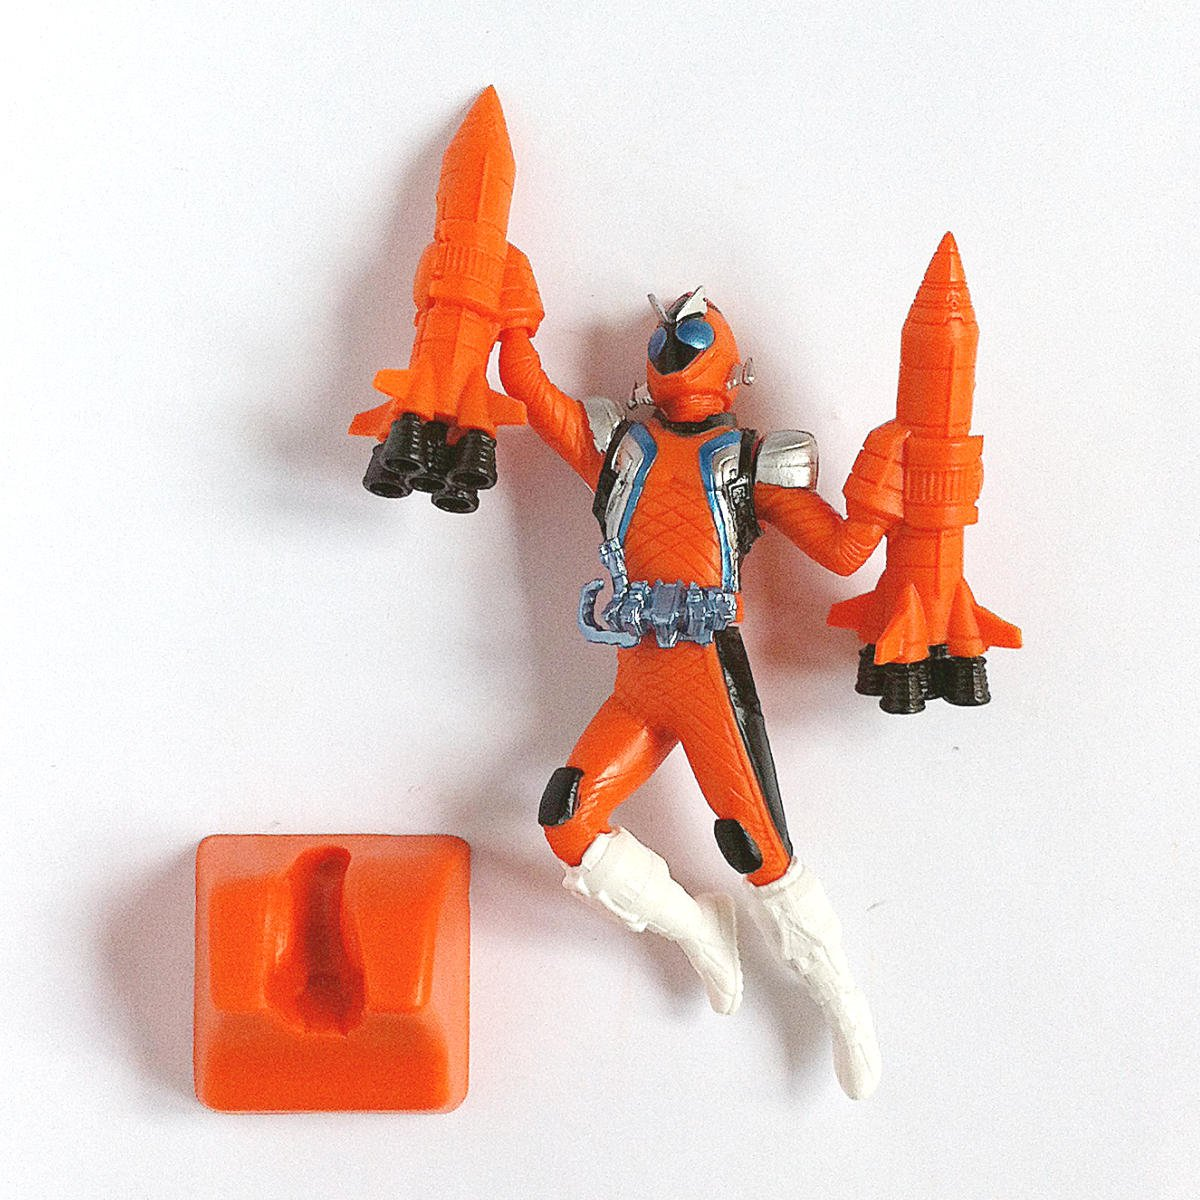 Kamen Rider Fourze Rocket States from HG Kamen Rider Fourze by Bandai